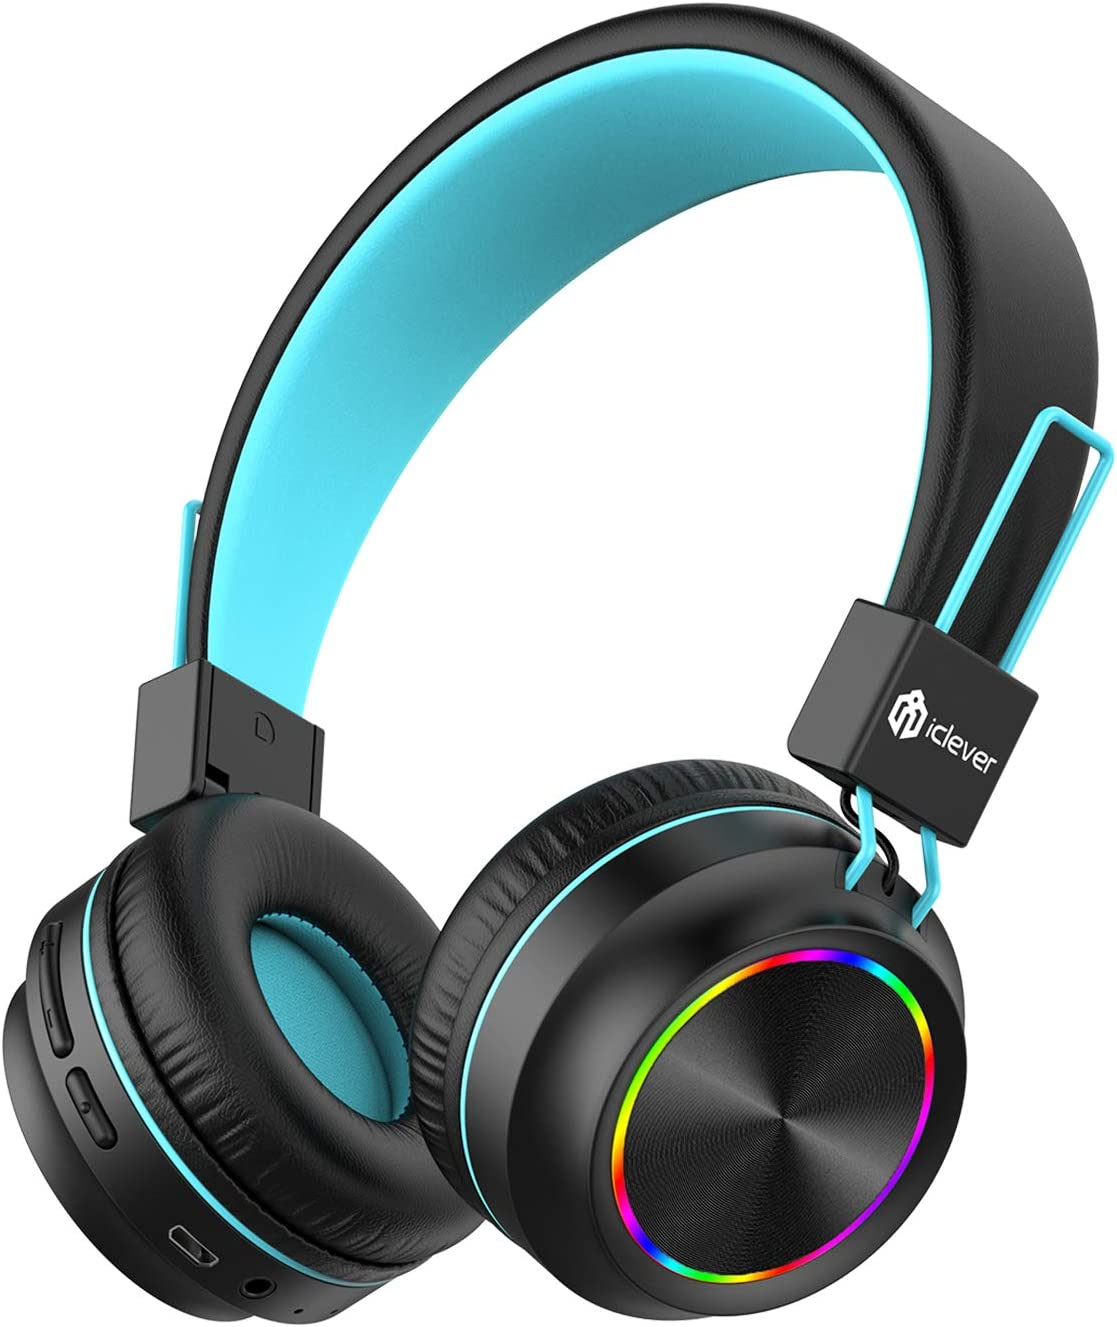 iClever BTH03 Kids Wireless Headphones, Colorful LED Lights Kids Headphones with MIC, 25H Playtime, Stereo Sound, Bluetooth 5.0, Foldable, Childrens Headphones on Ear for Study Tablet Airplane, Black